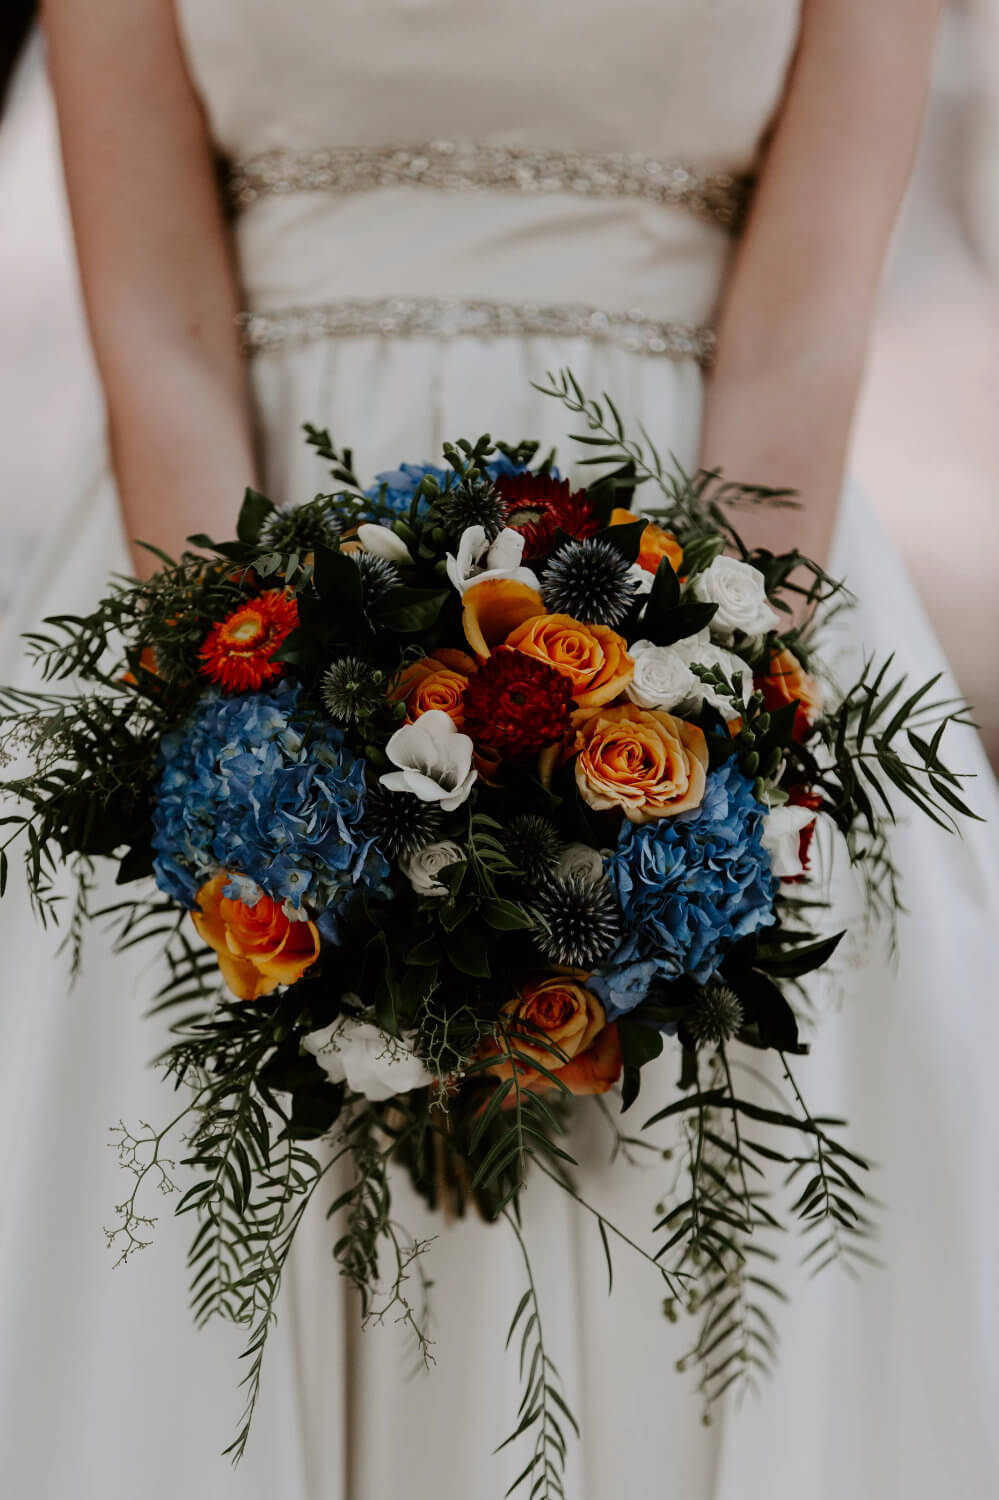 How to Save Your Wedding Budget Saving for Wedding Tips Warrior Rose Events 3